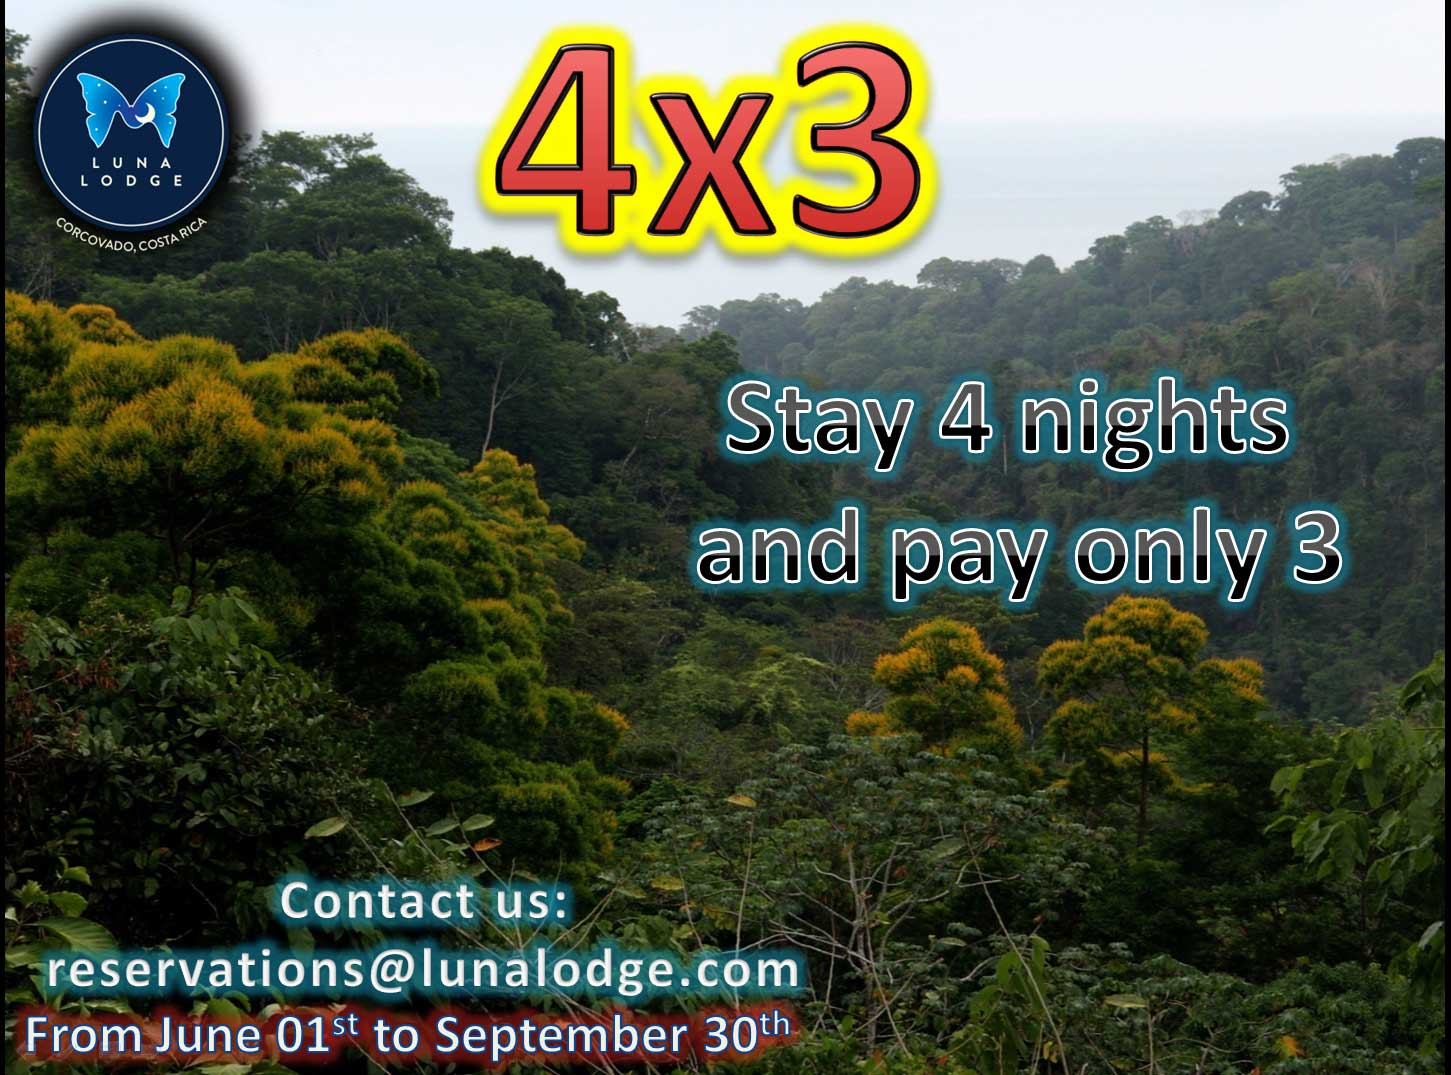 4x3 Promotion - Stay 4 days, pay for only 3